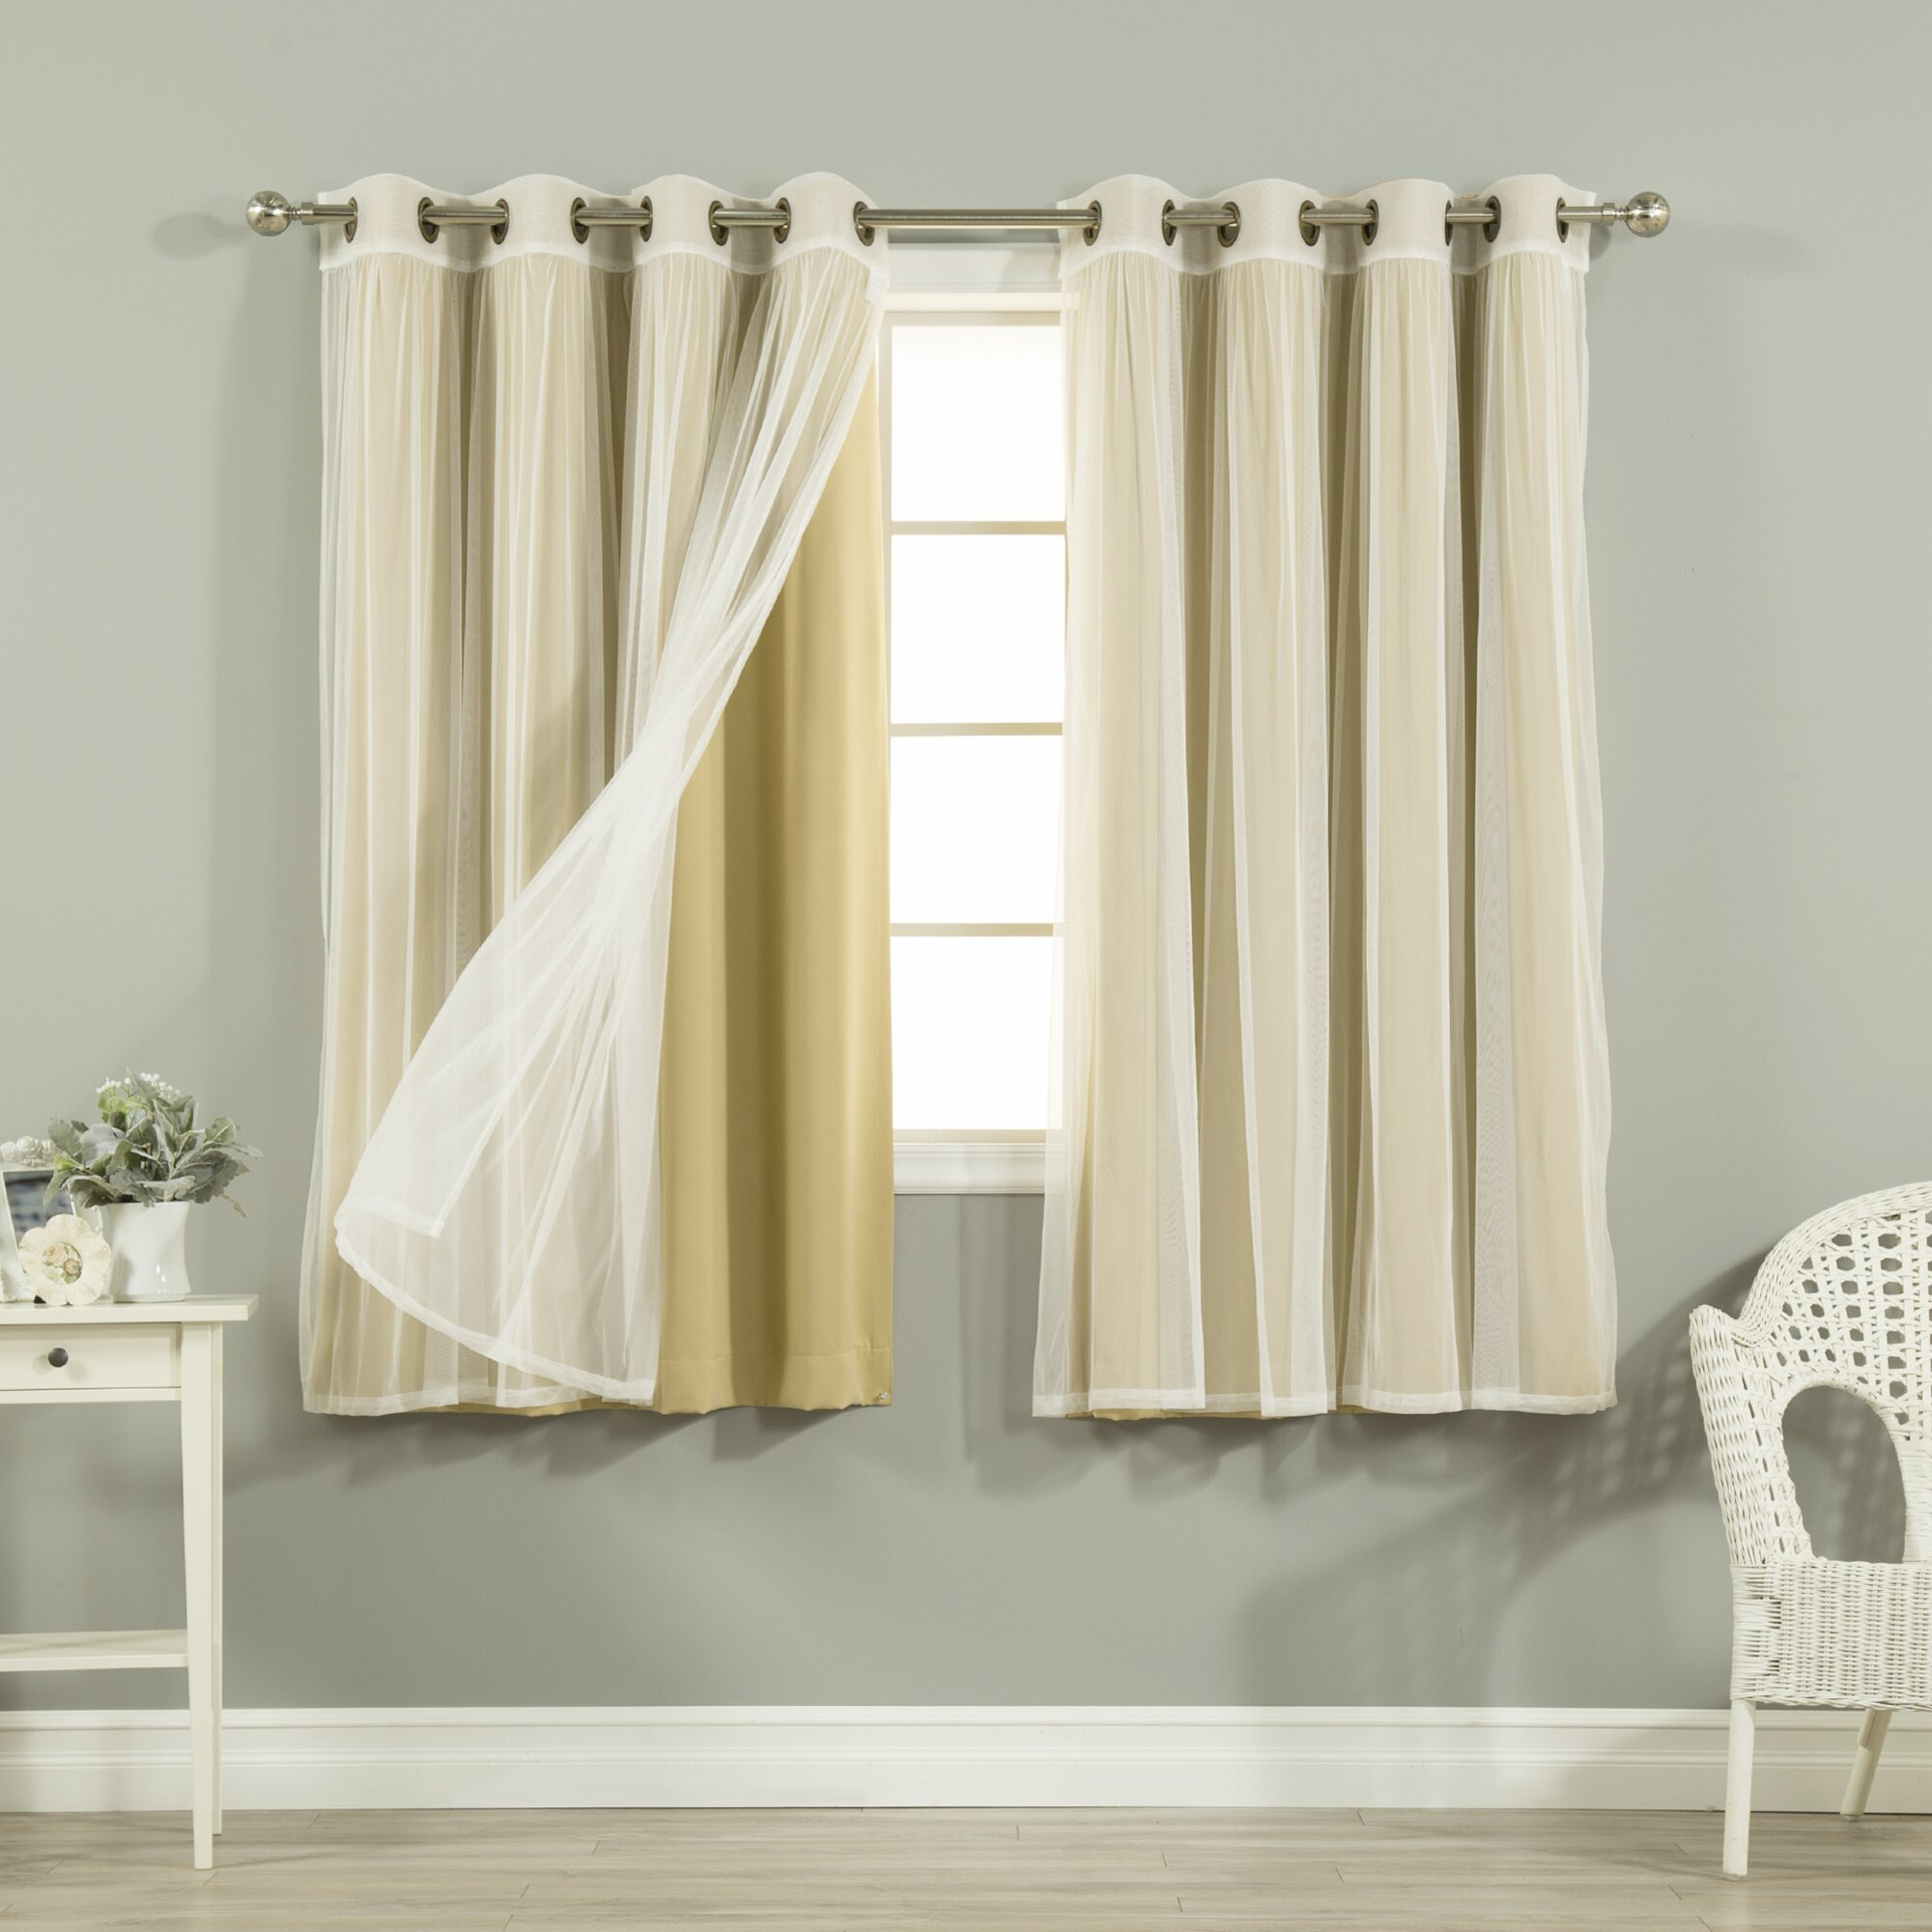 Best home fashion curtains 46